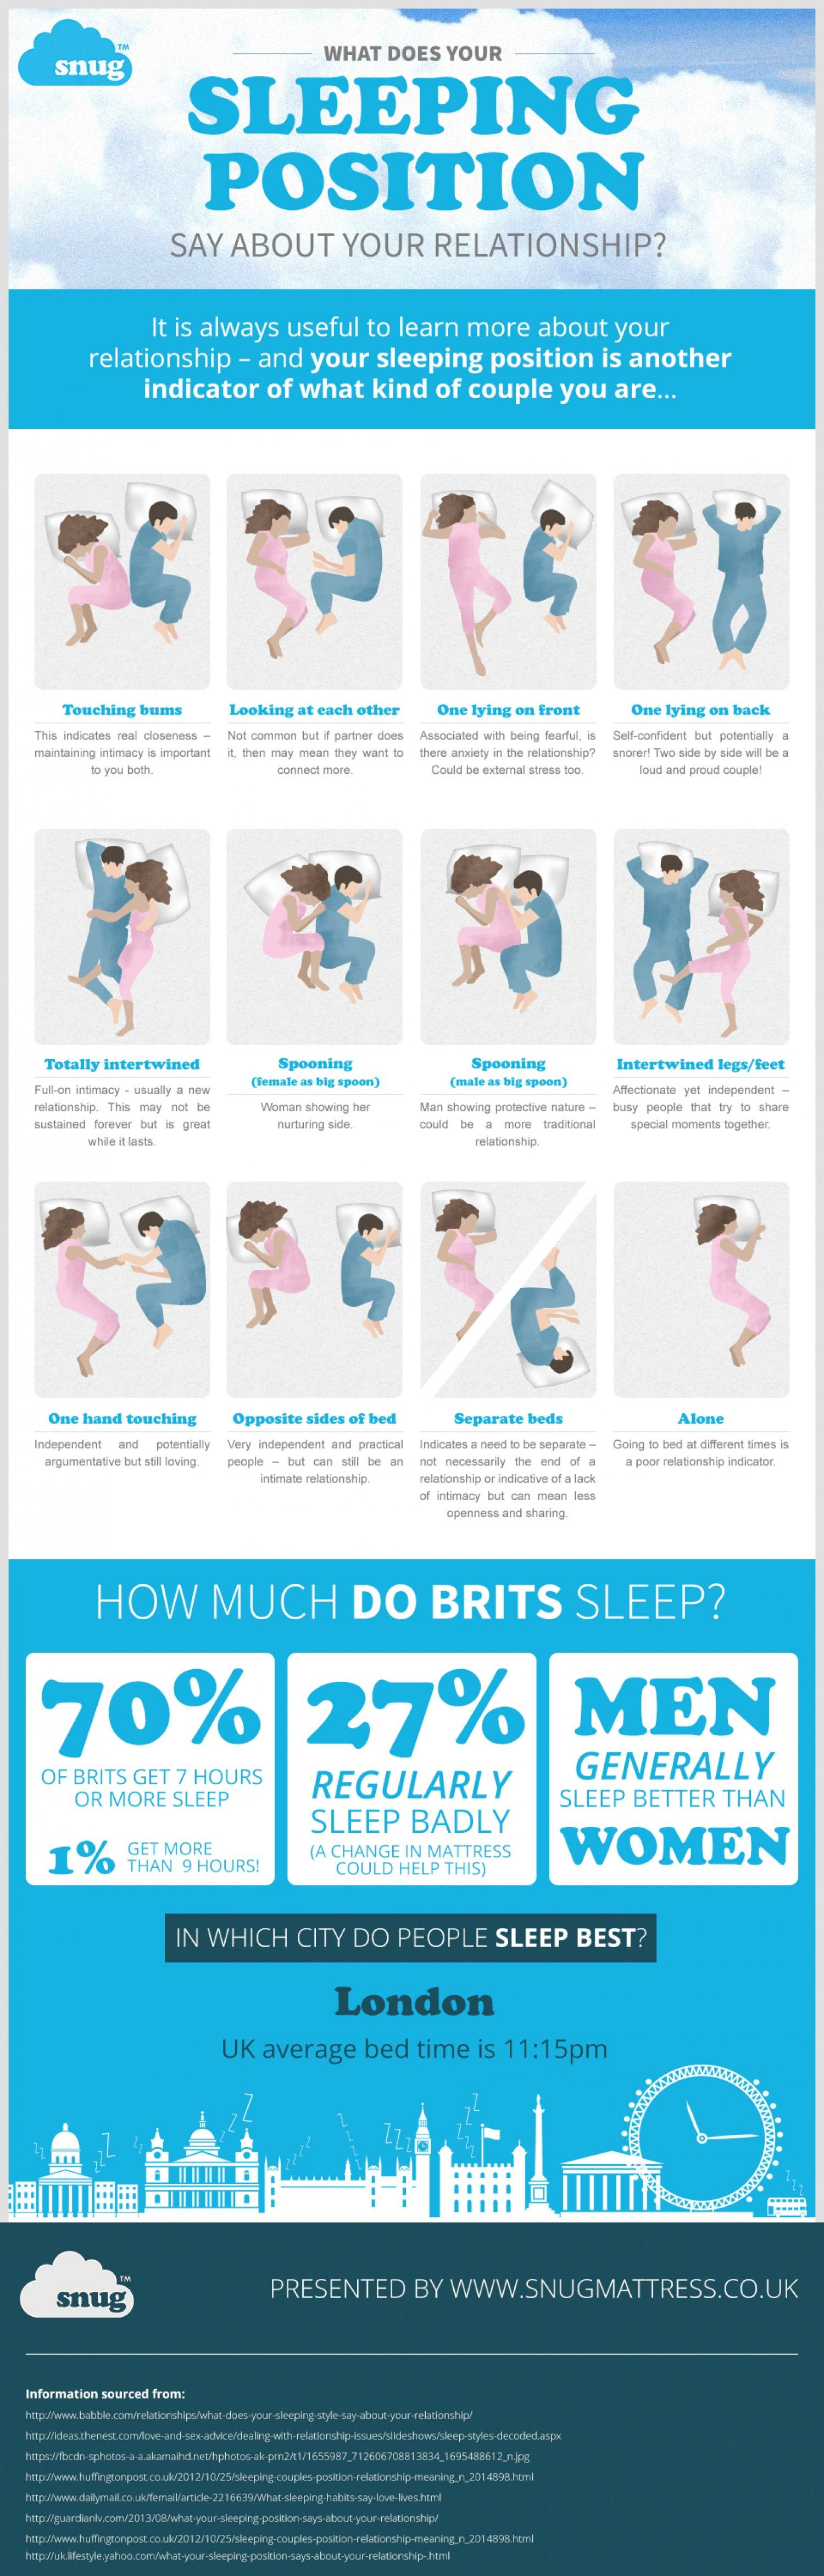 What Your Sleeping Position Says About Your Relationship